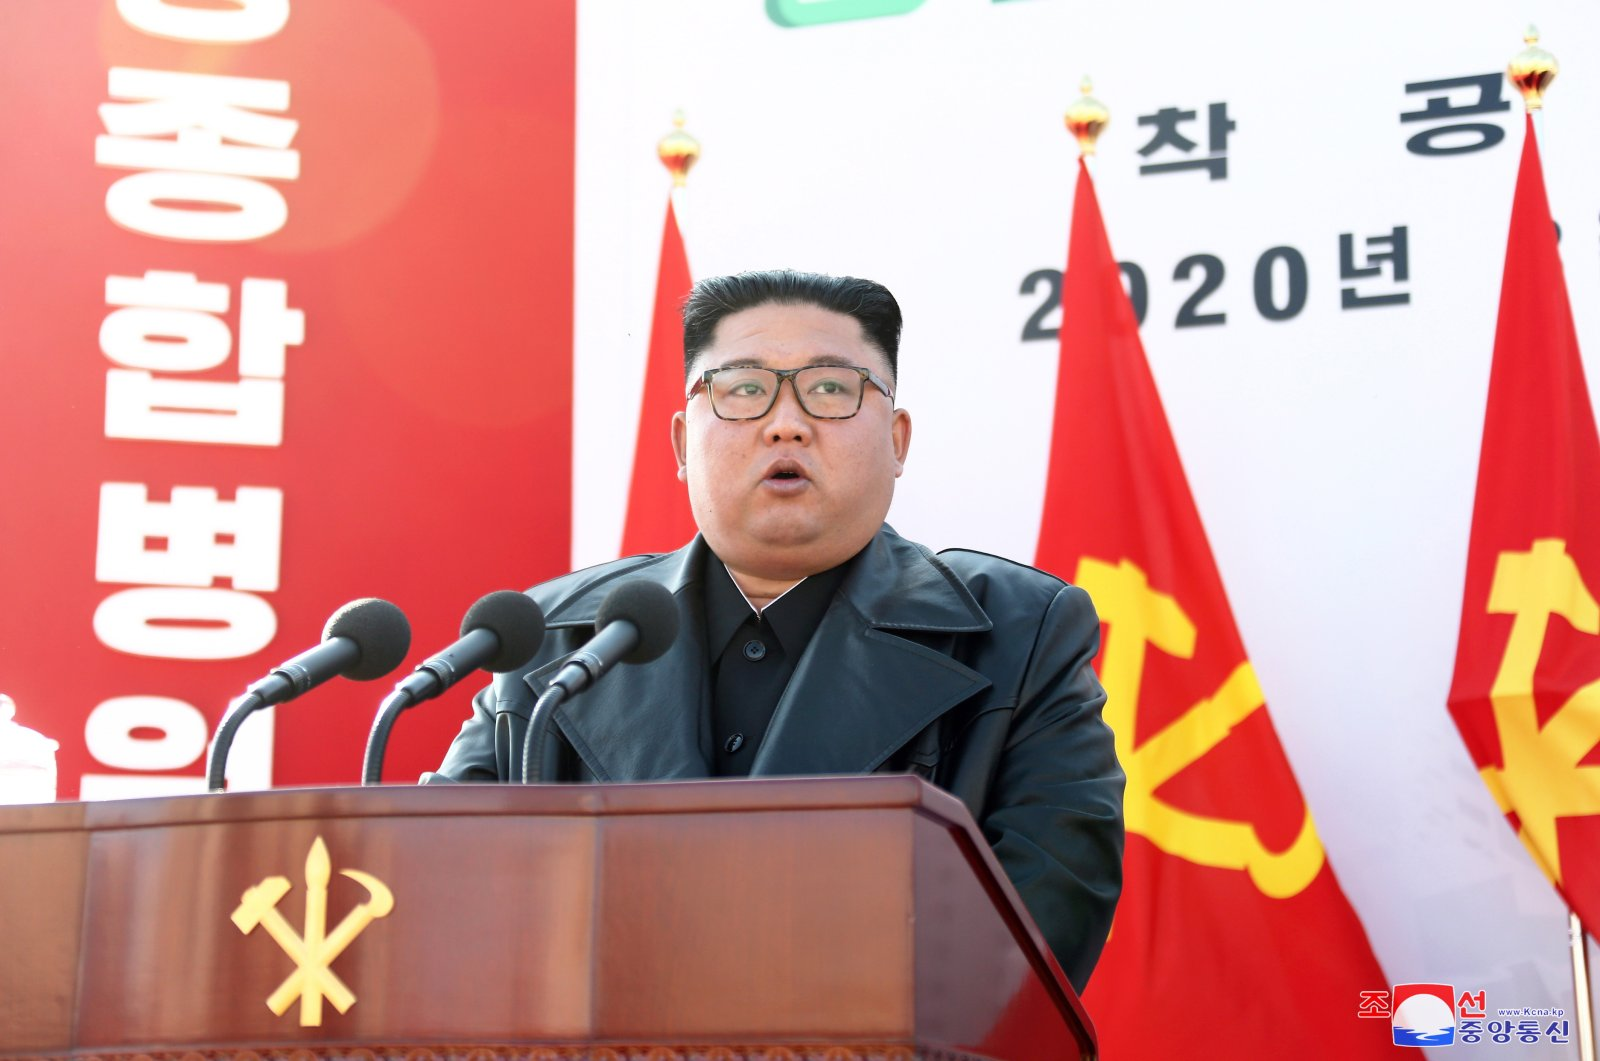 A photo released by the official North Korean Central News Agency (KCNA) shows shows North Korean leader Kim Jong-un delivering a speech on the occasion of the 75th founding anniversary, at the ground-breaking ceremony of for the construction of the Pyongynag Hospital, 17 March 2020 (issued 01 May 2020). (EPA Photo)